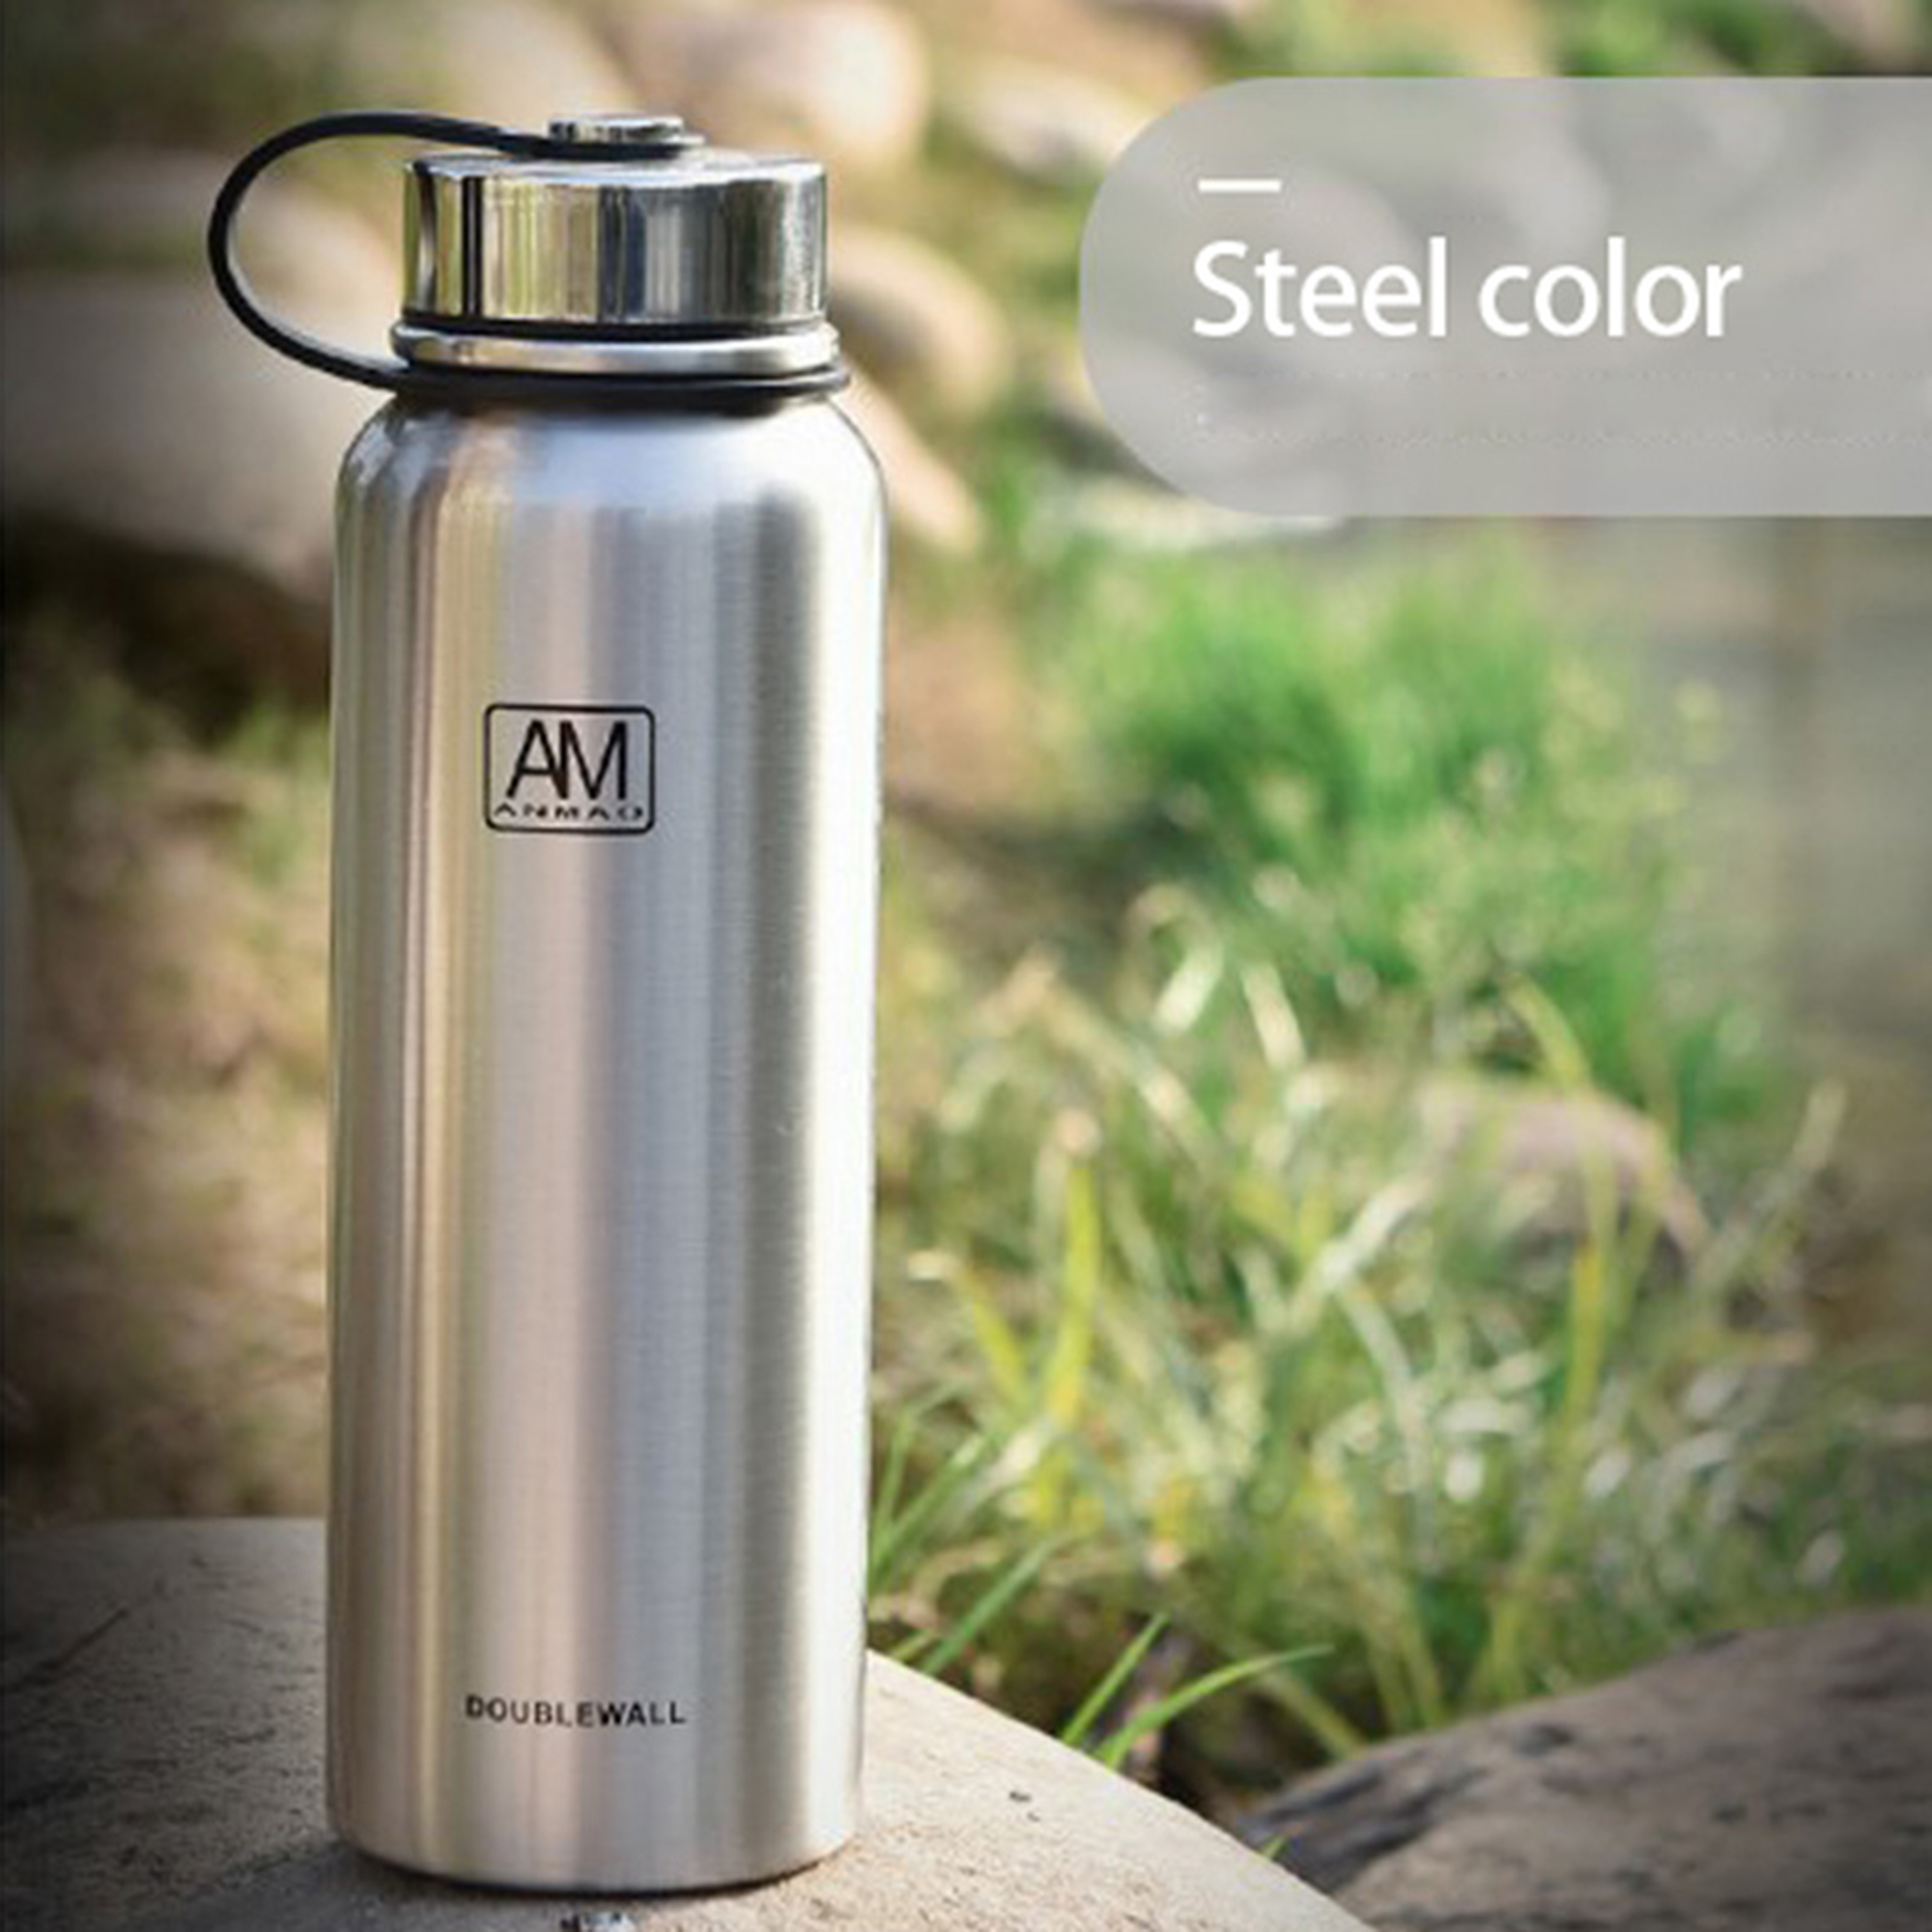 Leak-proof Stainless Steel Water Insulated Sports Gym Travel Mug Bottle Vacuum